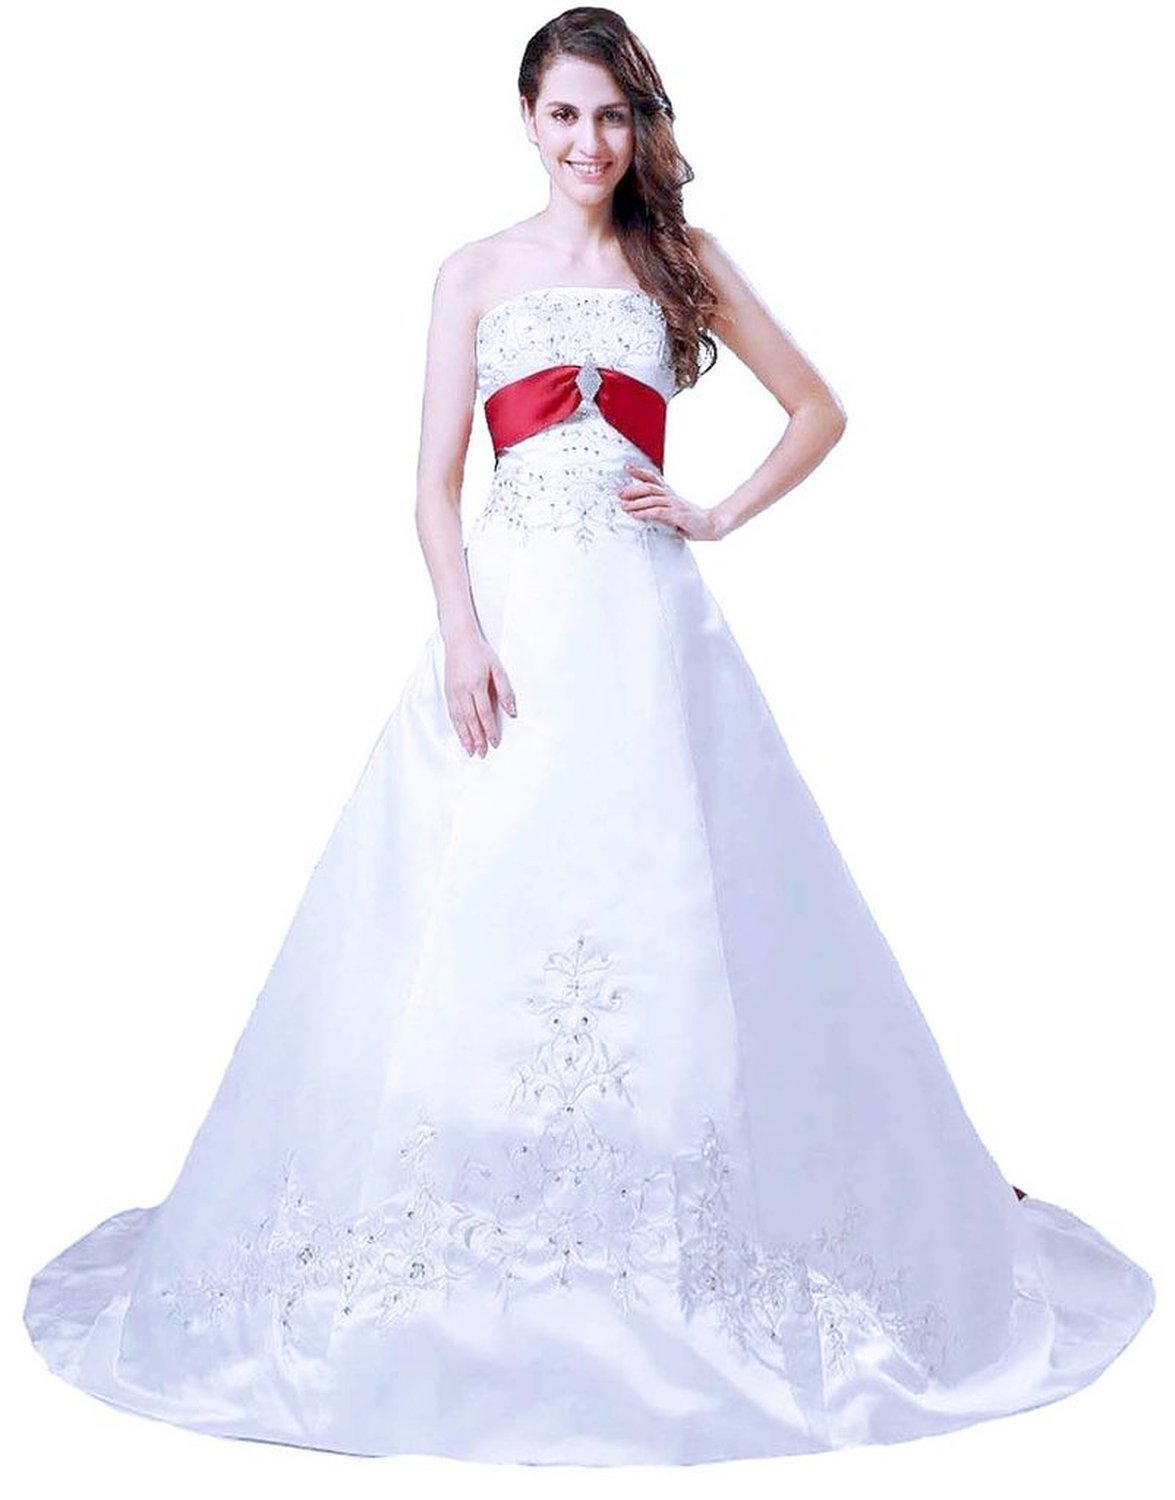 Snowskite Women's Strapless A-line Satin Embroidery Beaded Wedding Dress White&Red 16